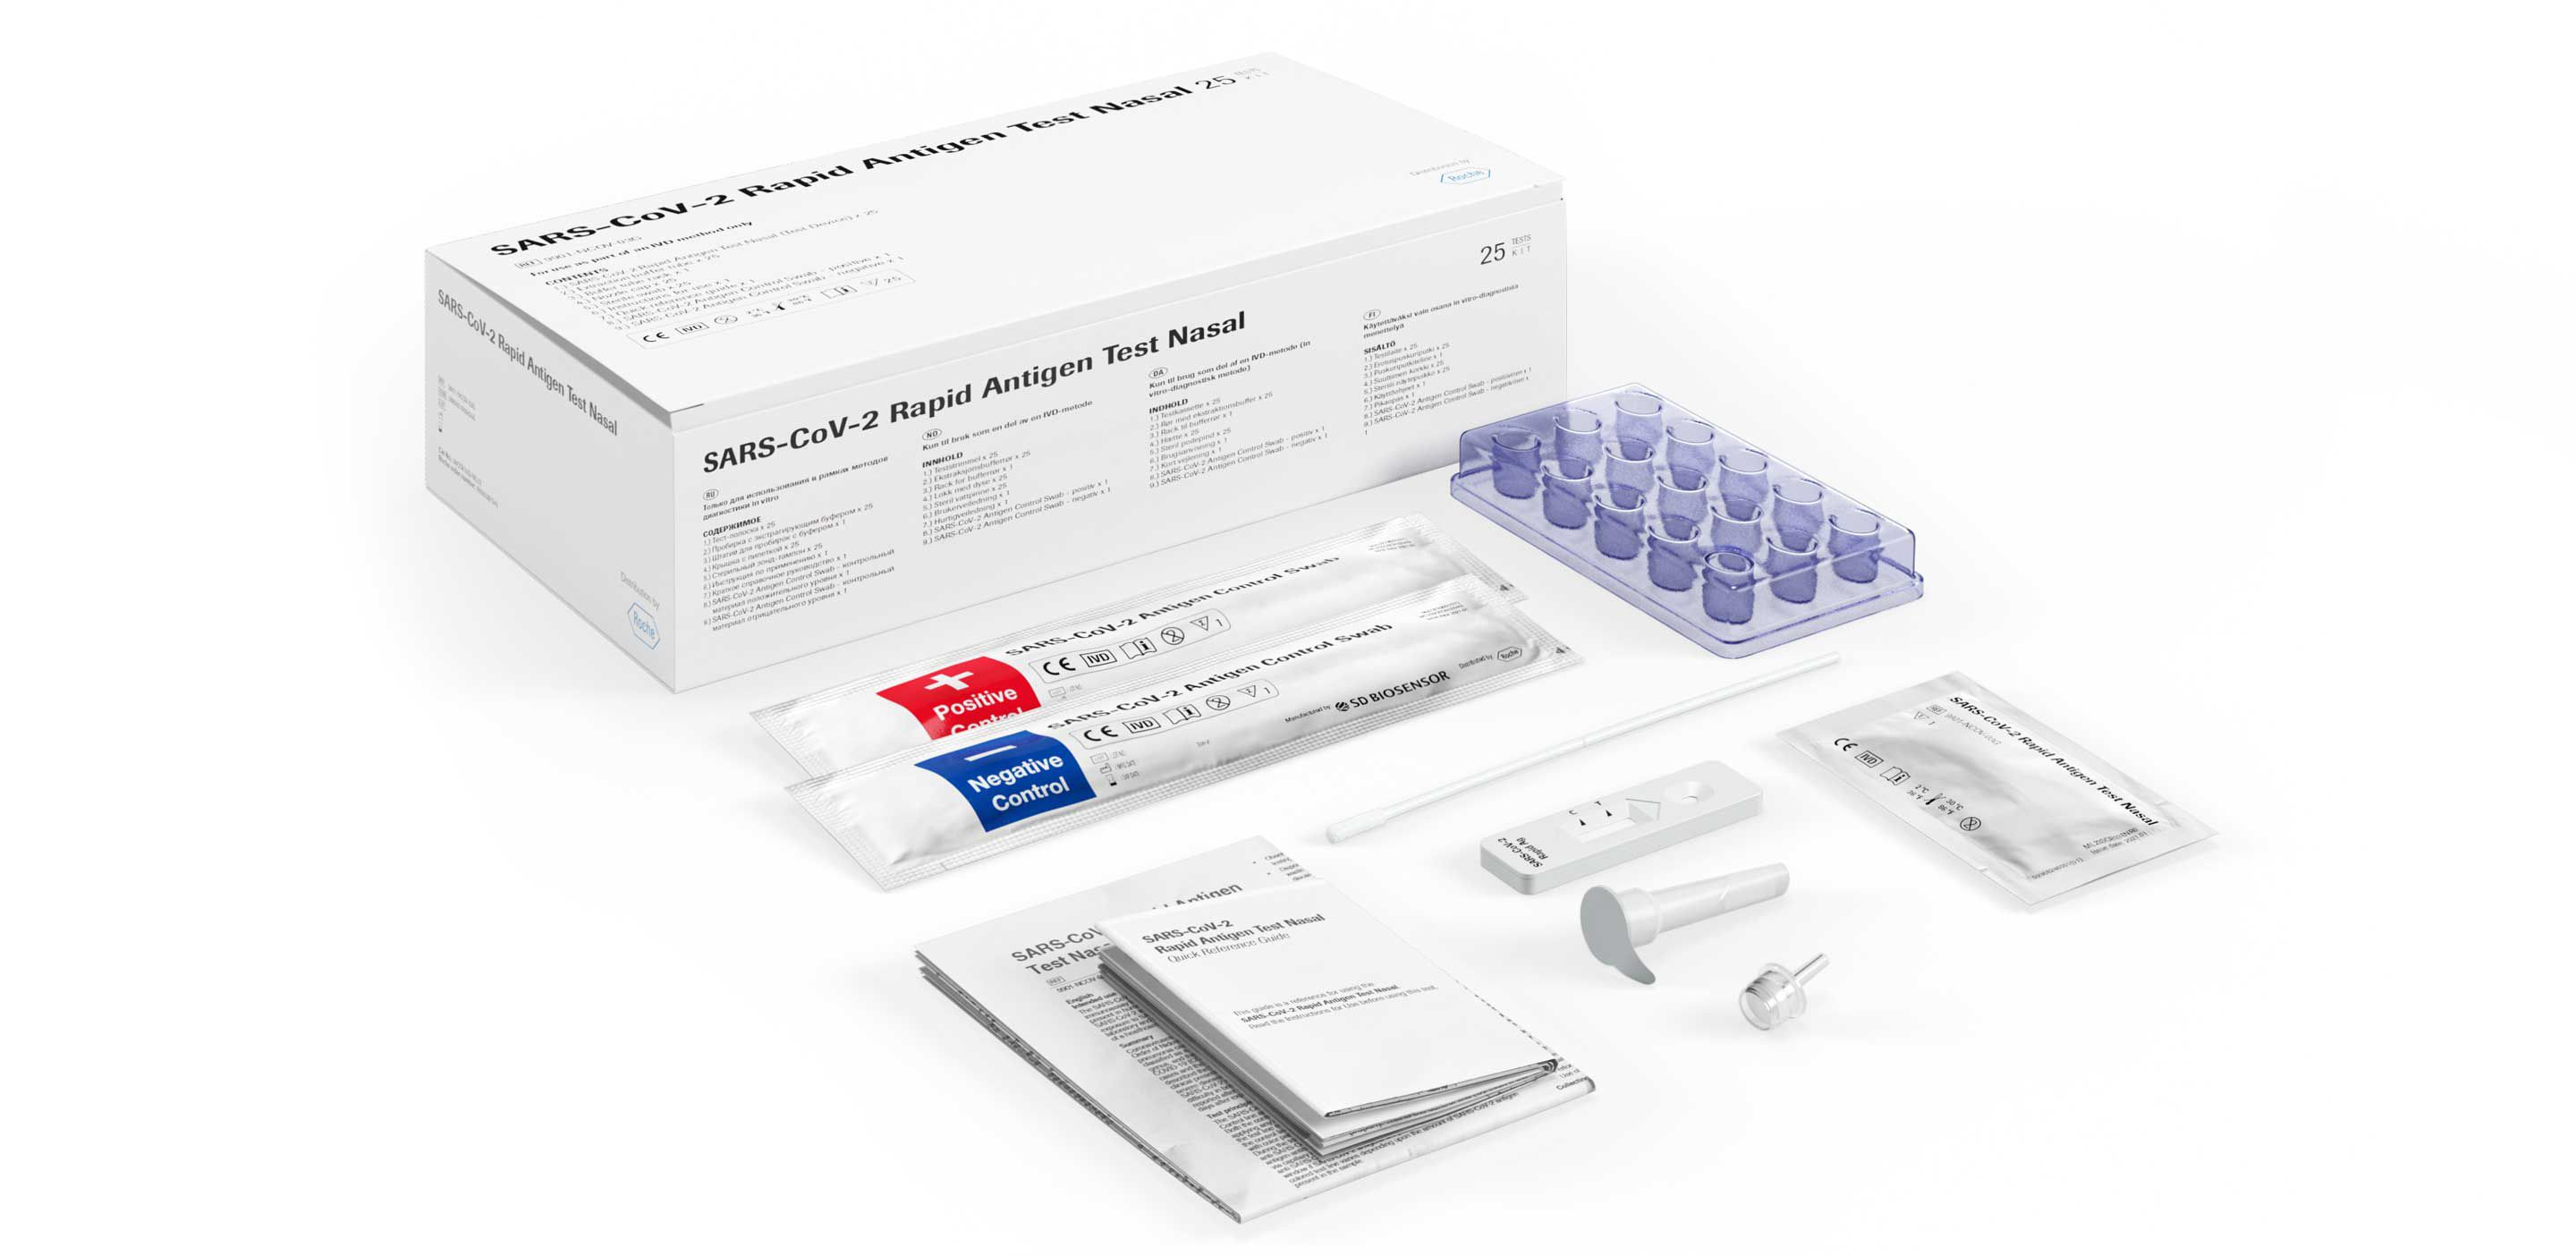 SARS-CoV-2-Antigen-test-nasal-kit